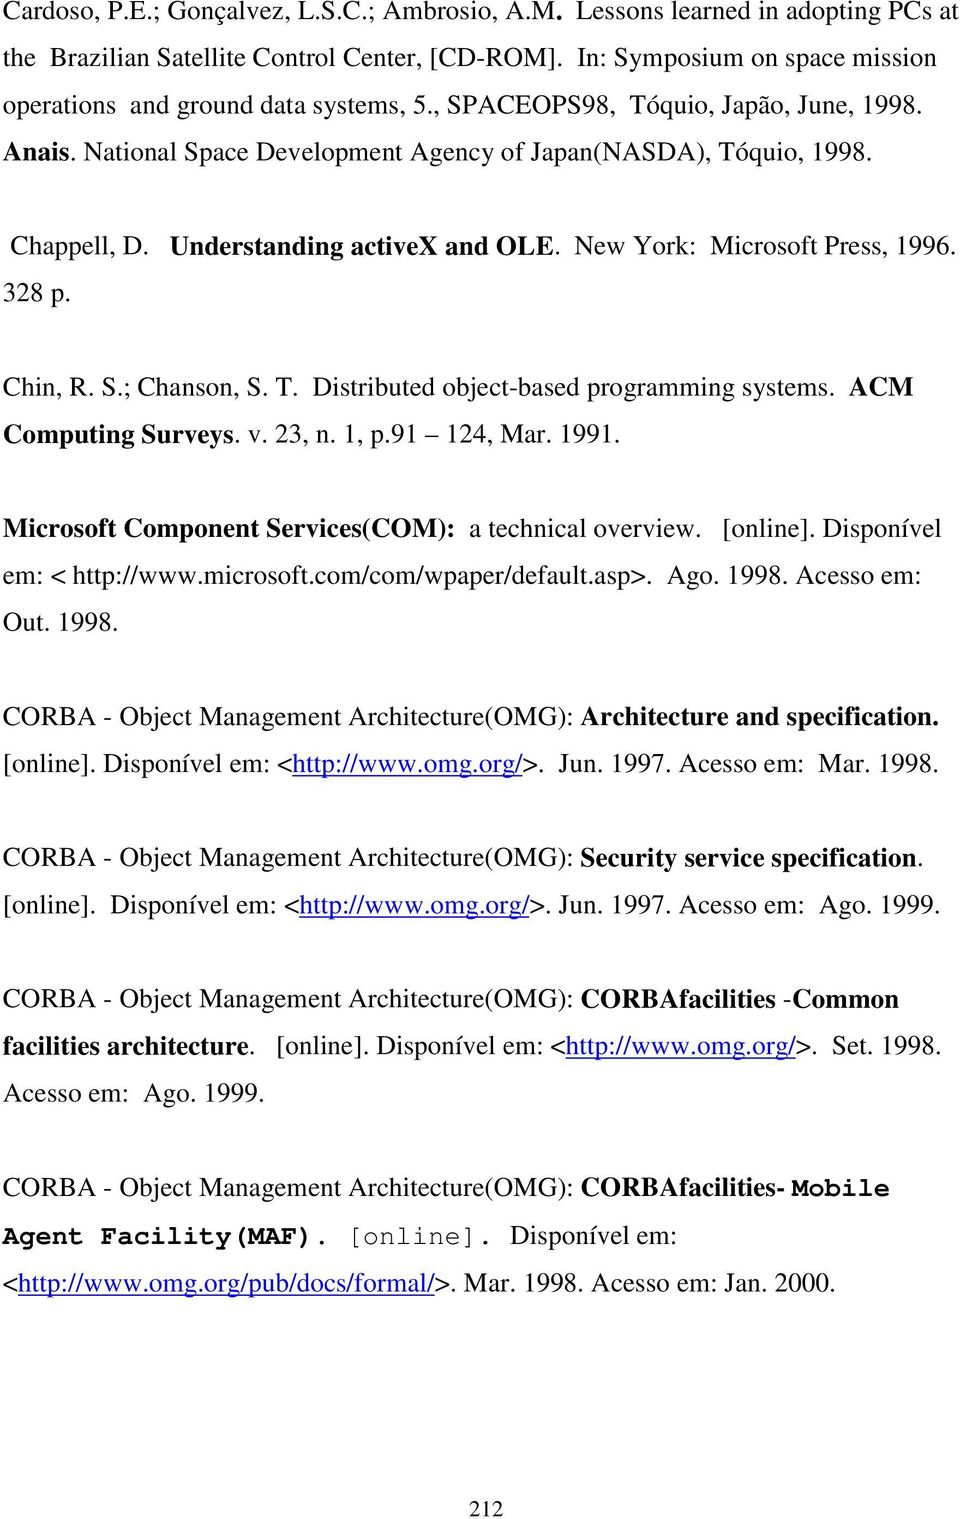 Understanding activex and OLE. New York: Microsoft Press, 1996. 328 p. Chin, R. S.; Chanson, S. T. Distributed object-based programming systems. ACM Computing Surveys. v. 23, n. 1, p.91 124, Mar.